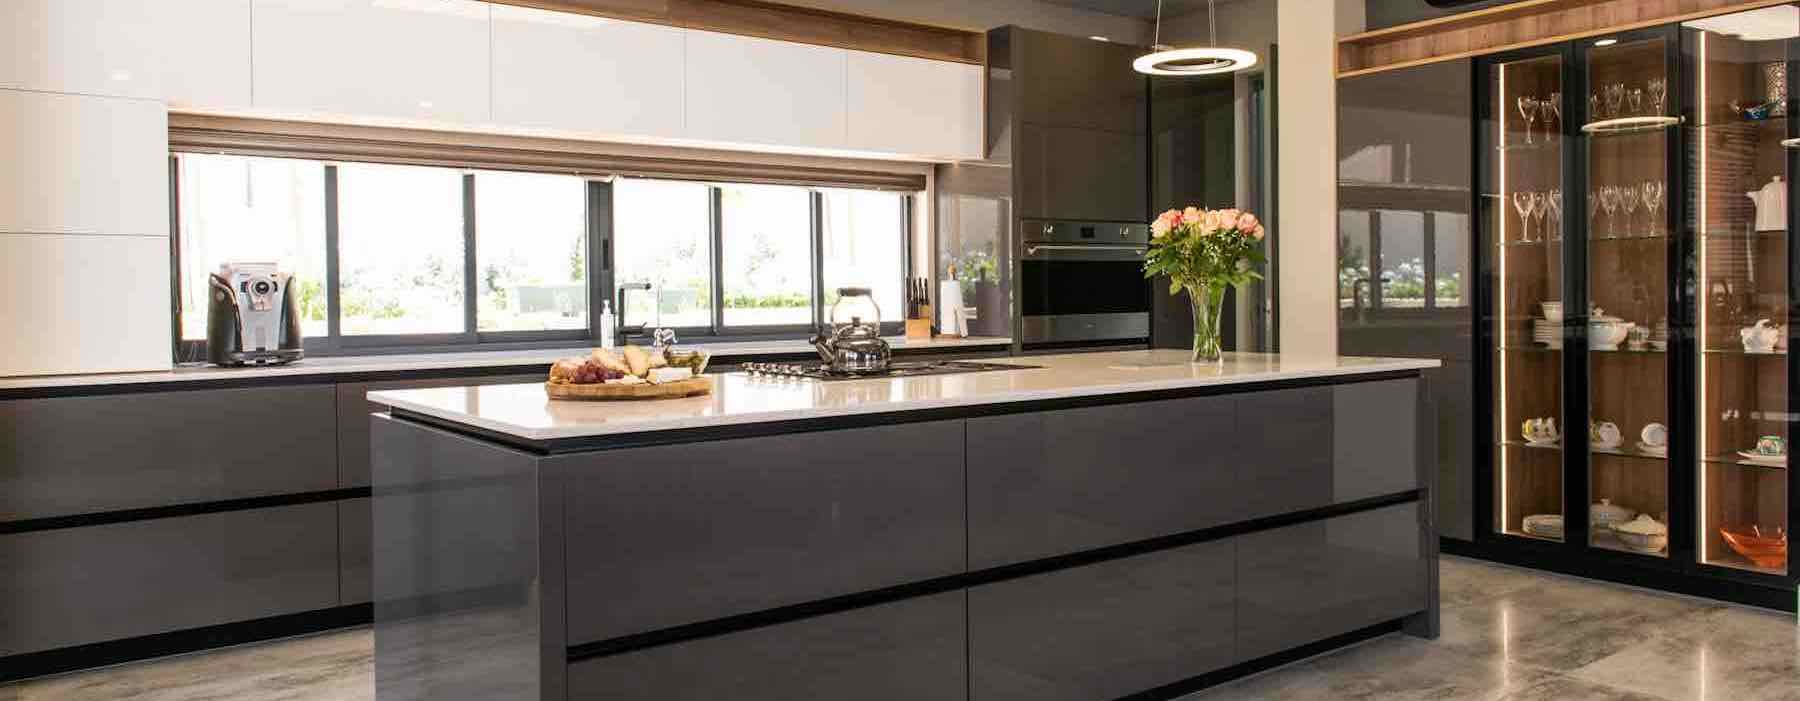 Get in the mood - Synergy Cabinets